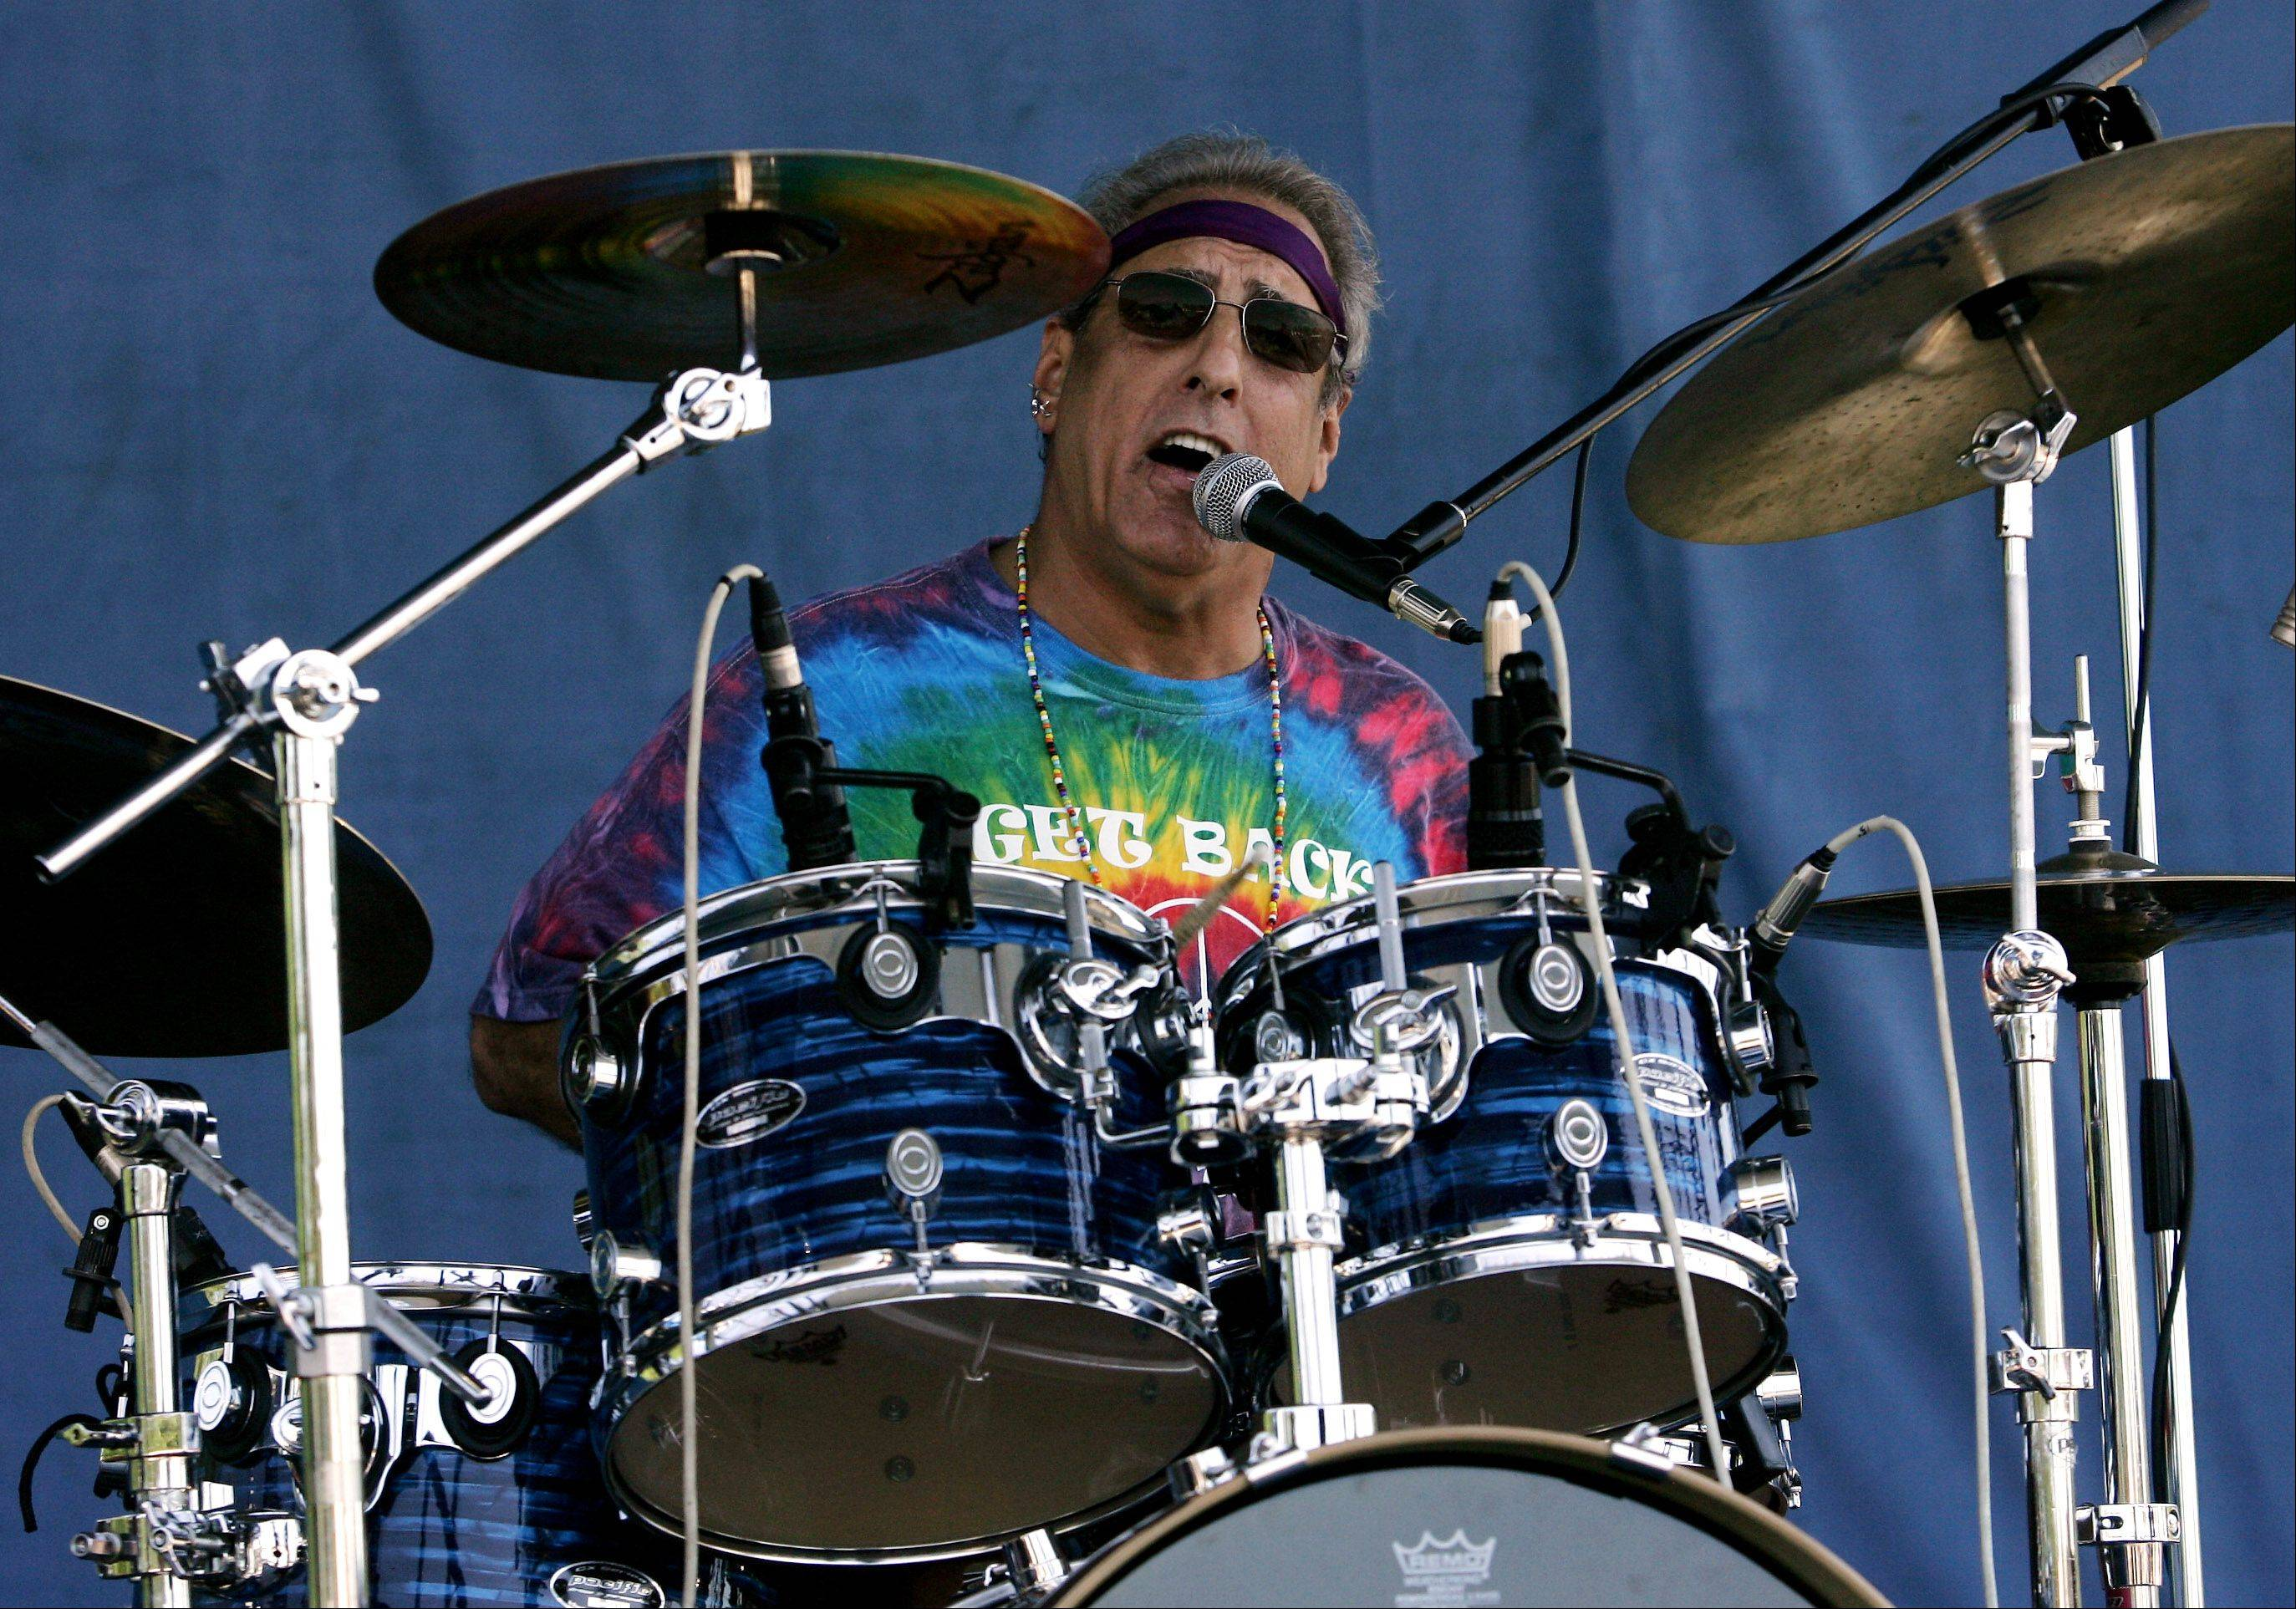 Bruce Hoffenberg of the band Get Back from Lindenhurst performs during the final day of last year's village festival. Lindenfest kicks off Thursday, Aug. 11, at the village hall and U.S. Postal Service grounds on Sand Lake Road.